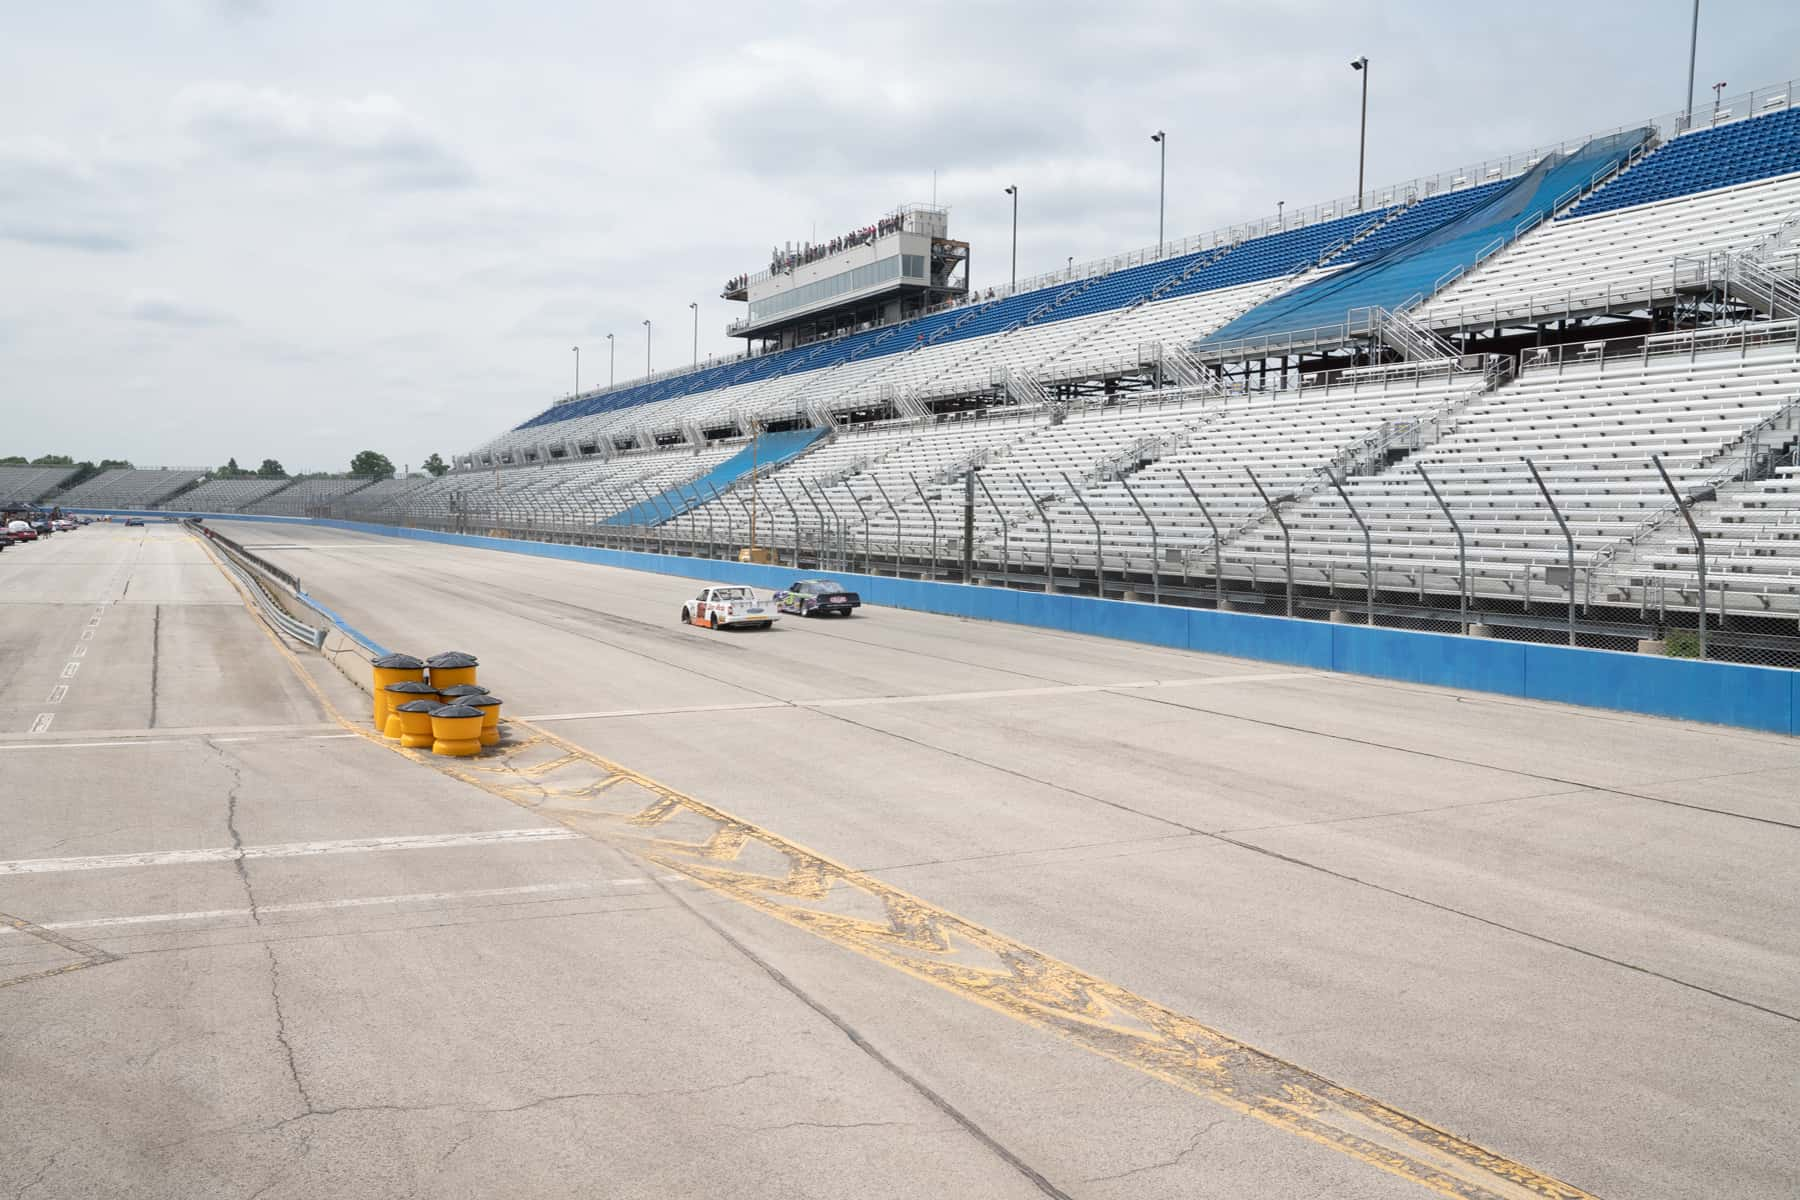 08_062019_milwaukeemile_013